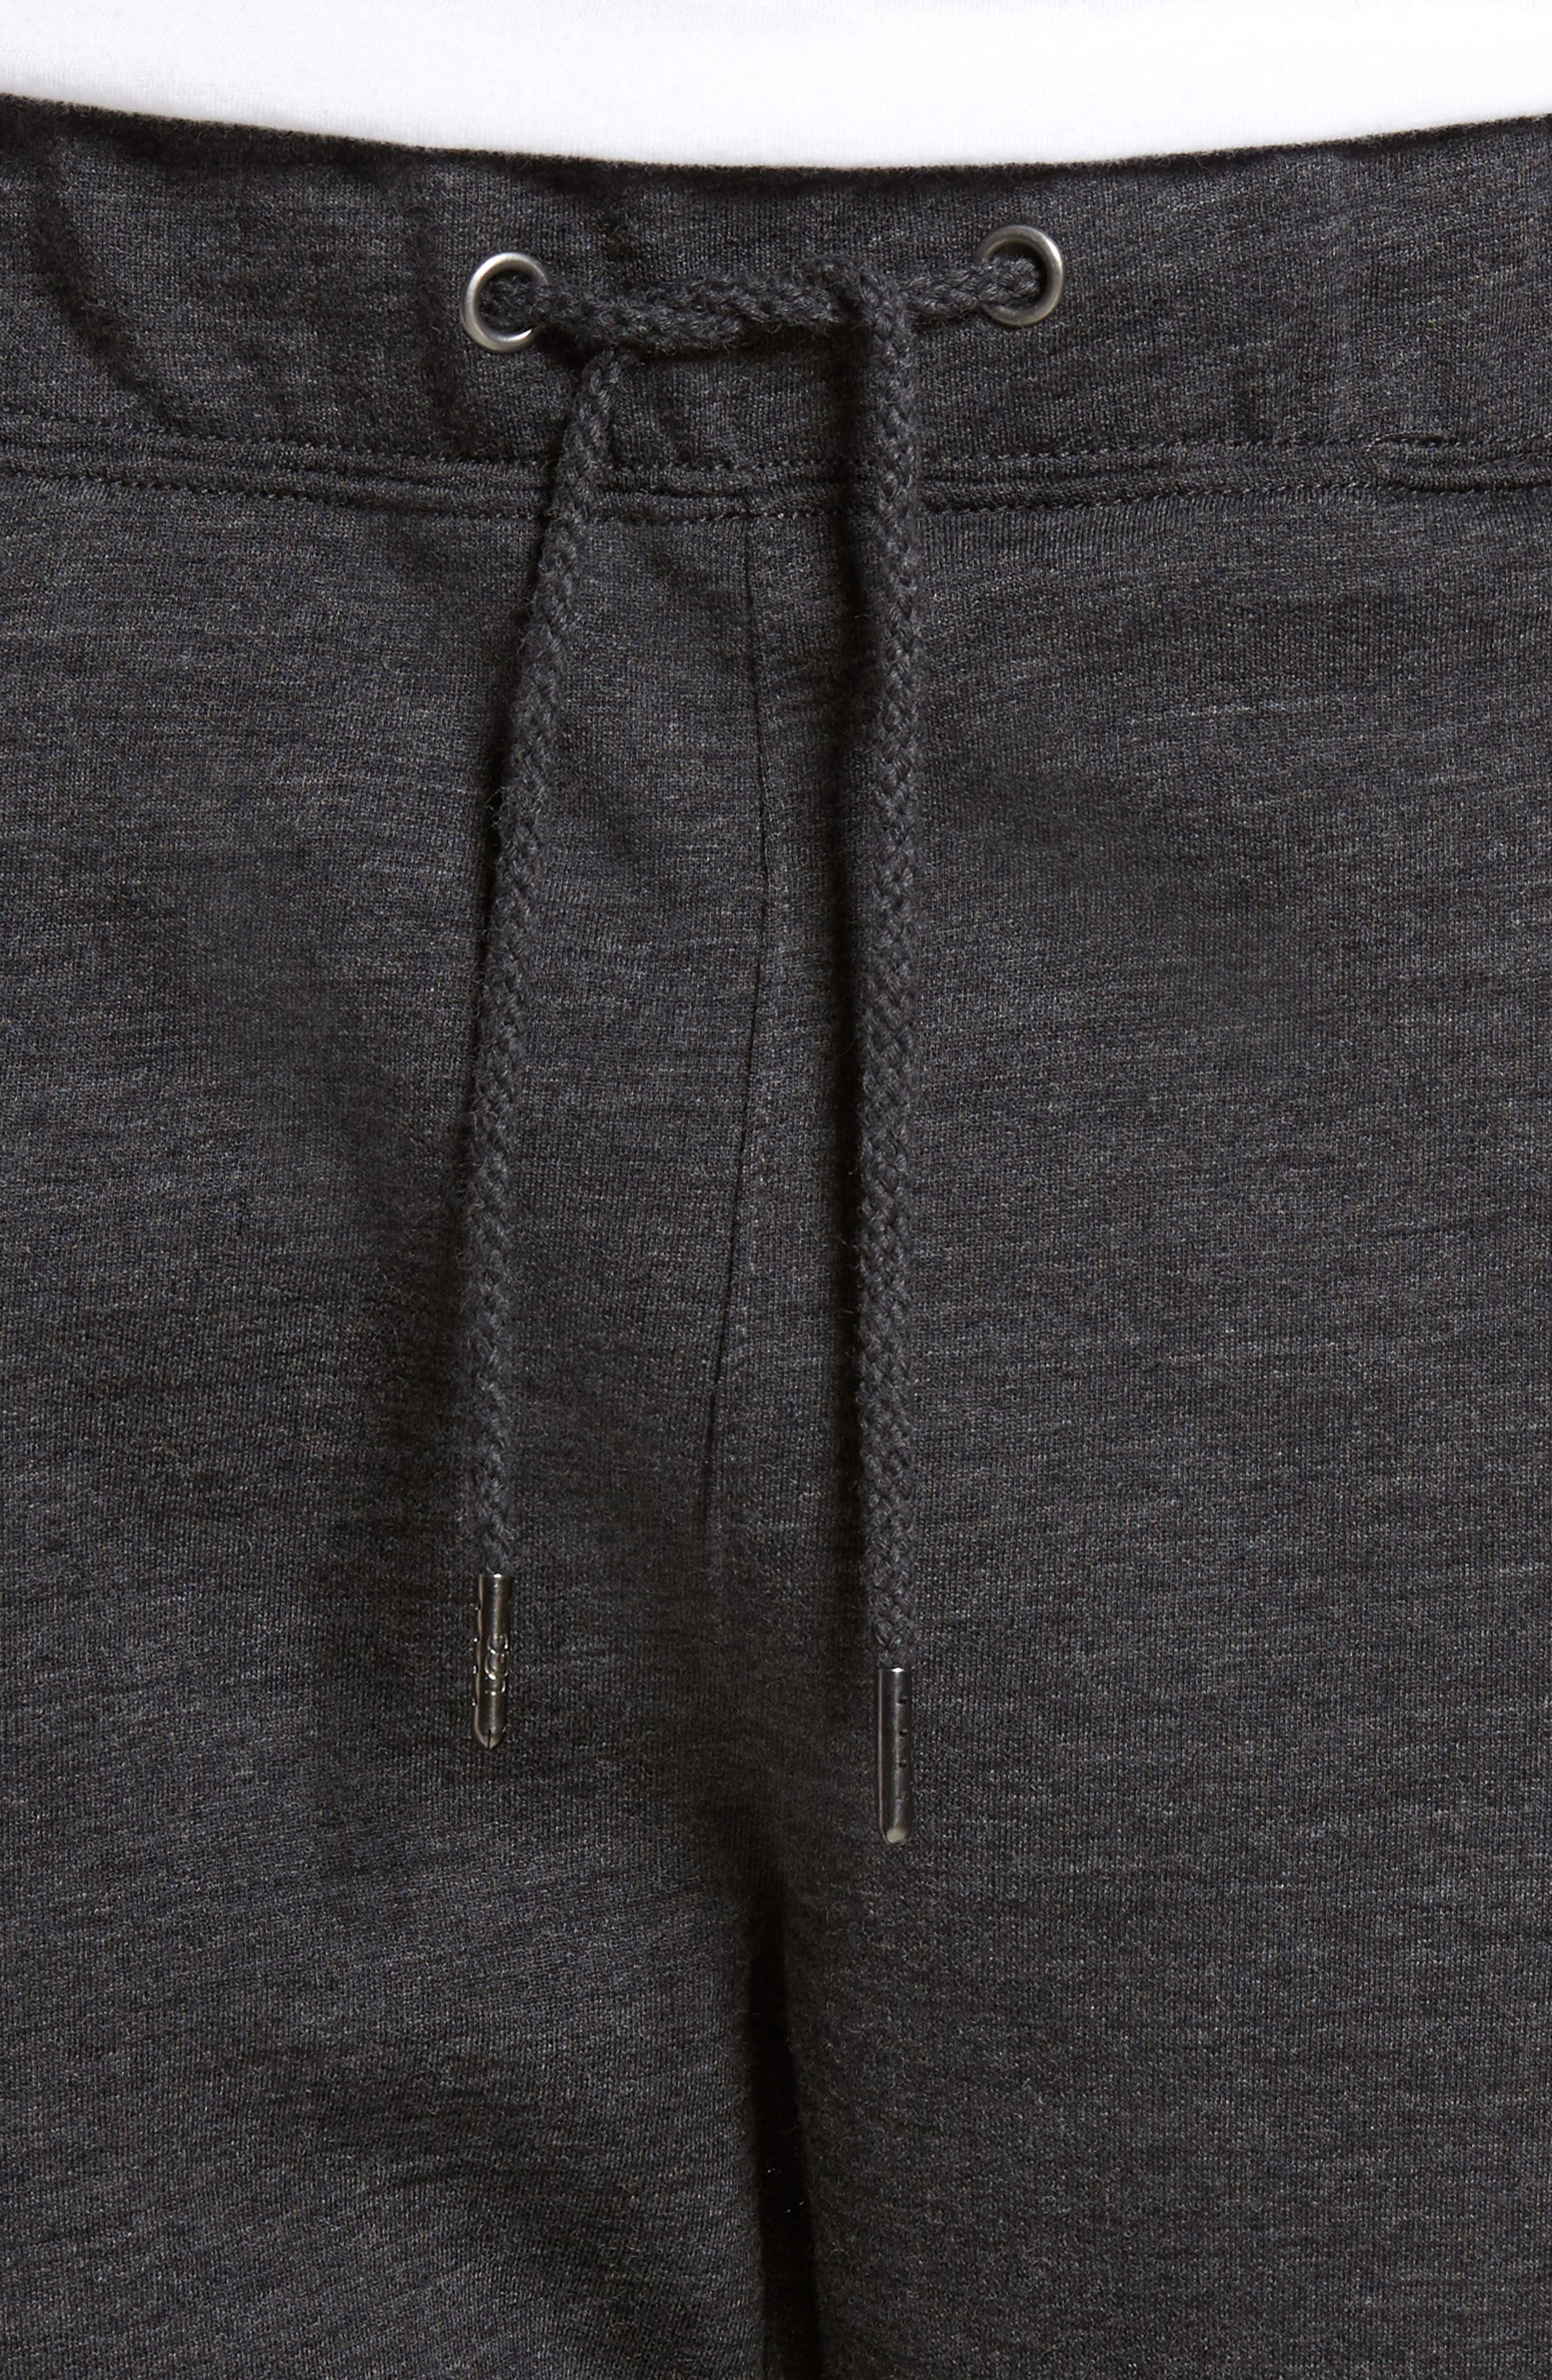 Merino Wool Fleece Jogger Pants,                             Alternate thumbnail 4, color,